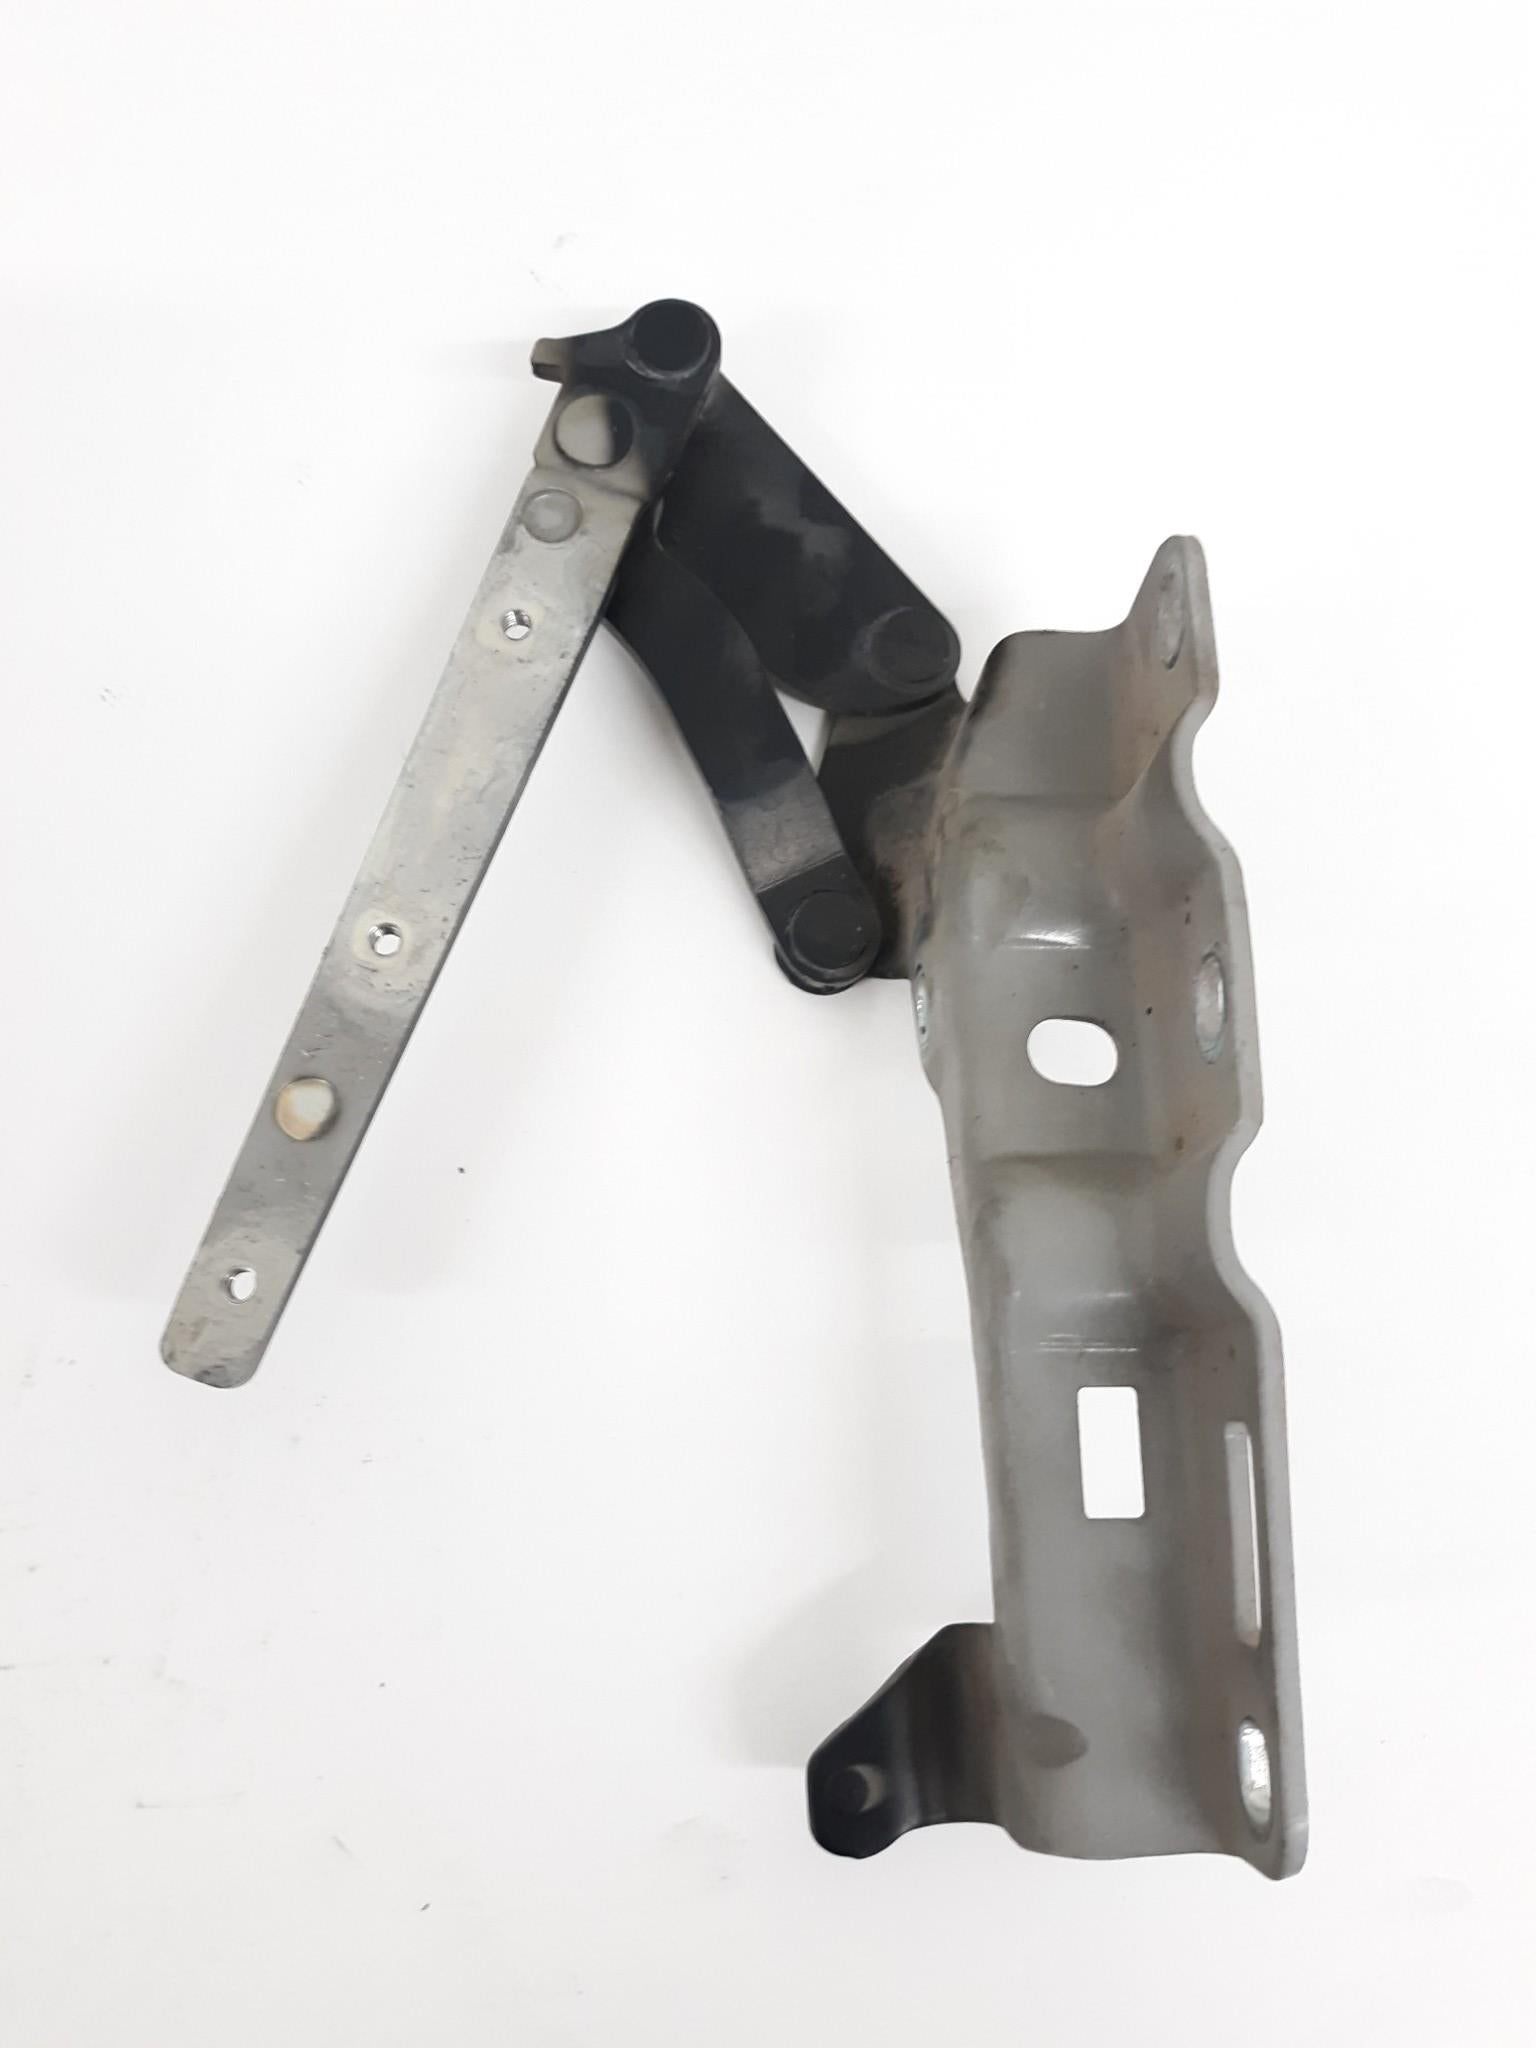 01-06 MERCEDES-BENZ W203 C230 C240 FRONT LEFT RIGHT HOOD HINGE PAIR SET OEM - Click Receive Auto Parts